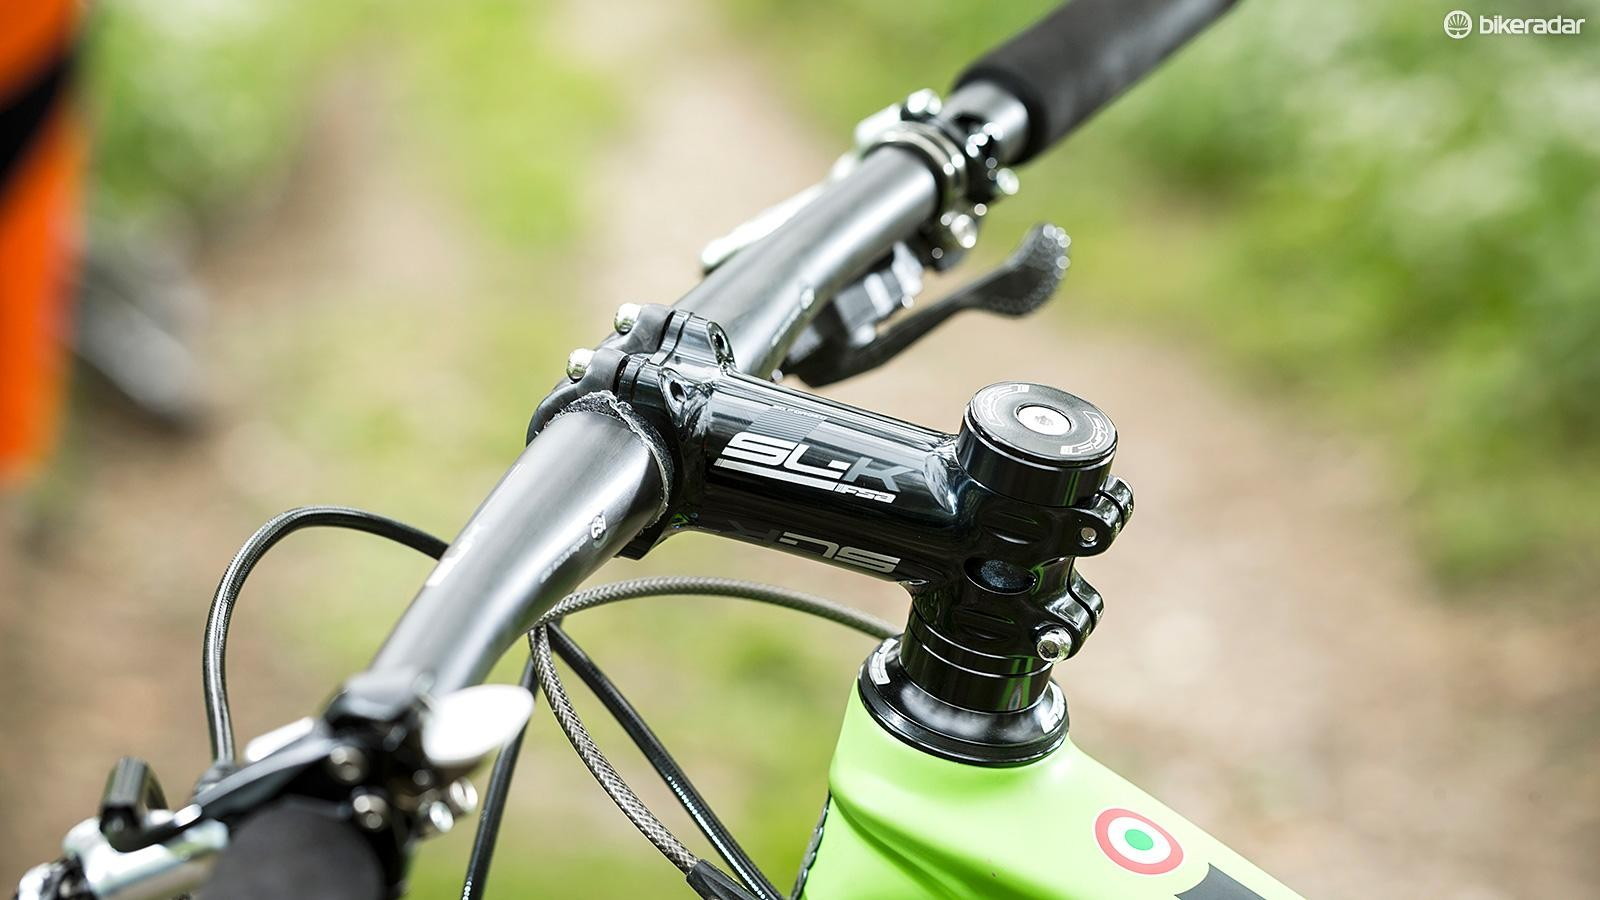 Many riders will prefer to swap out the ultra narrow 685mm bar